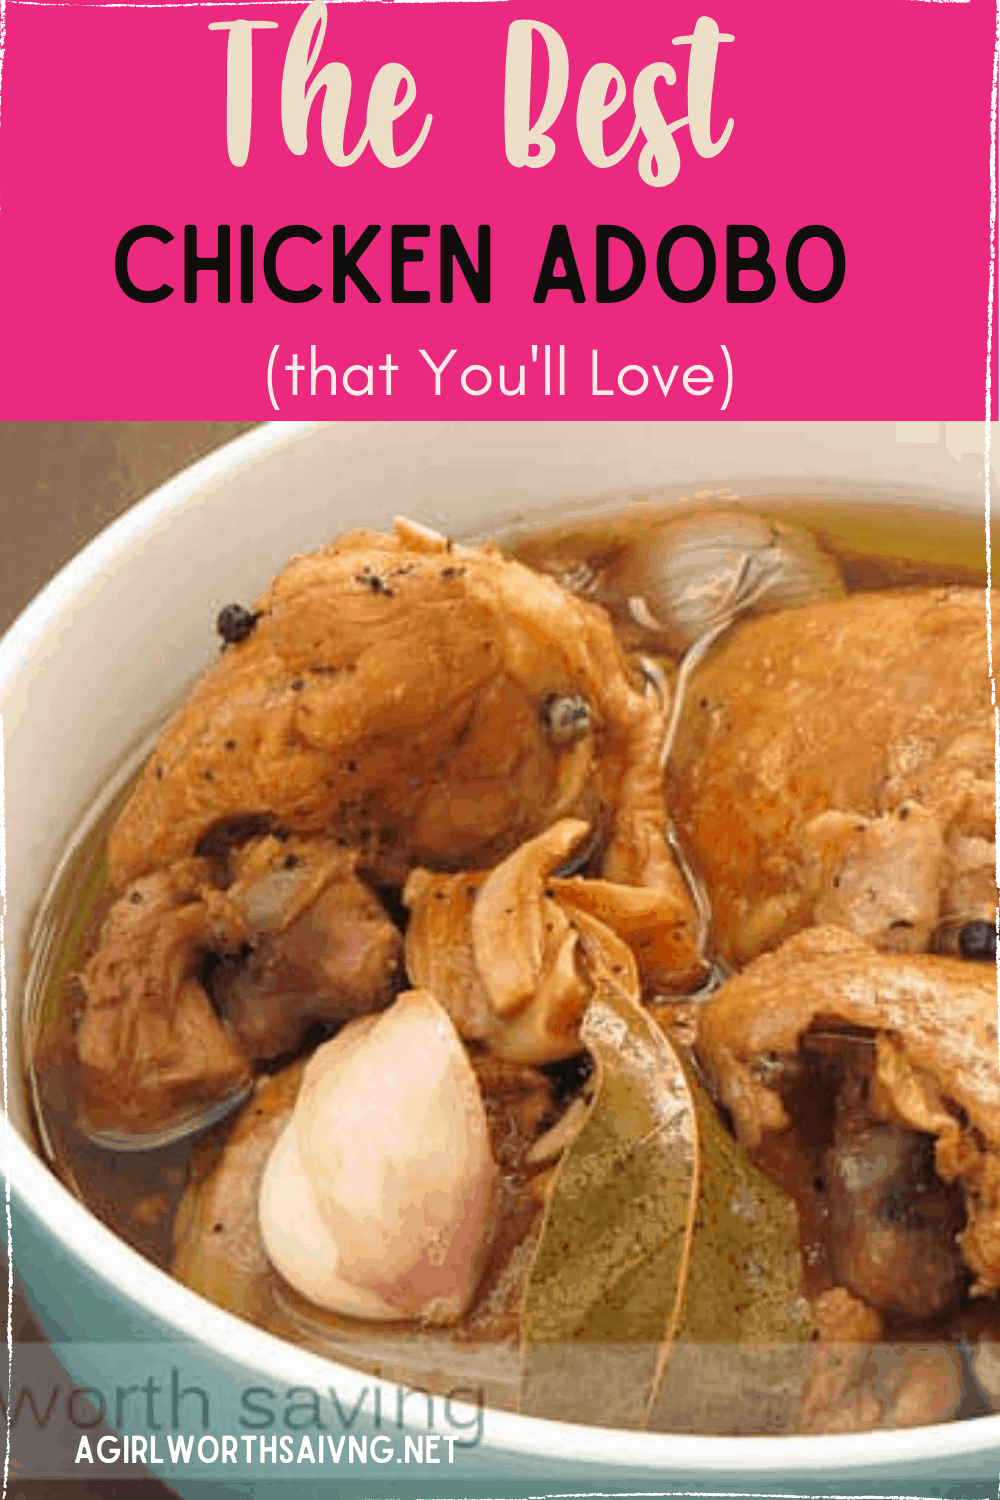 Get ready to love this delicious chicken adobo recipe. It's one of my favorite Filipino chicken adobo recipes that is loaded down with taste and flavor. This is a great recipe that combines chicken and a ton of other amazing ingredients to create a flavor that makes an authentic Filipino dish. My husband LOVES this dish and the flavor that the adobo sauce adds. It's also an amazing Paleo Adobo Chicken dish.